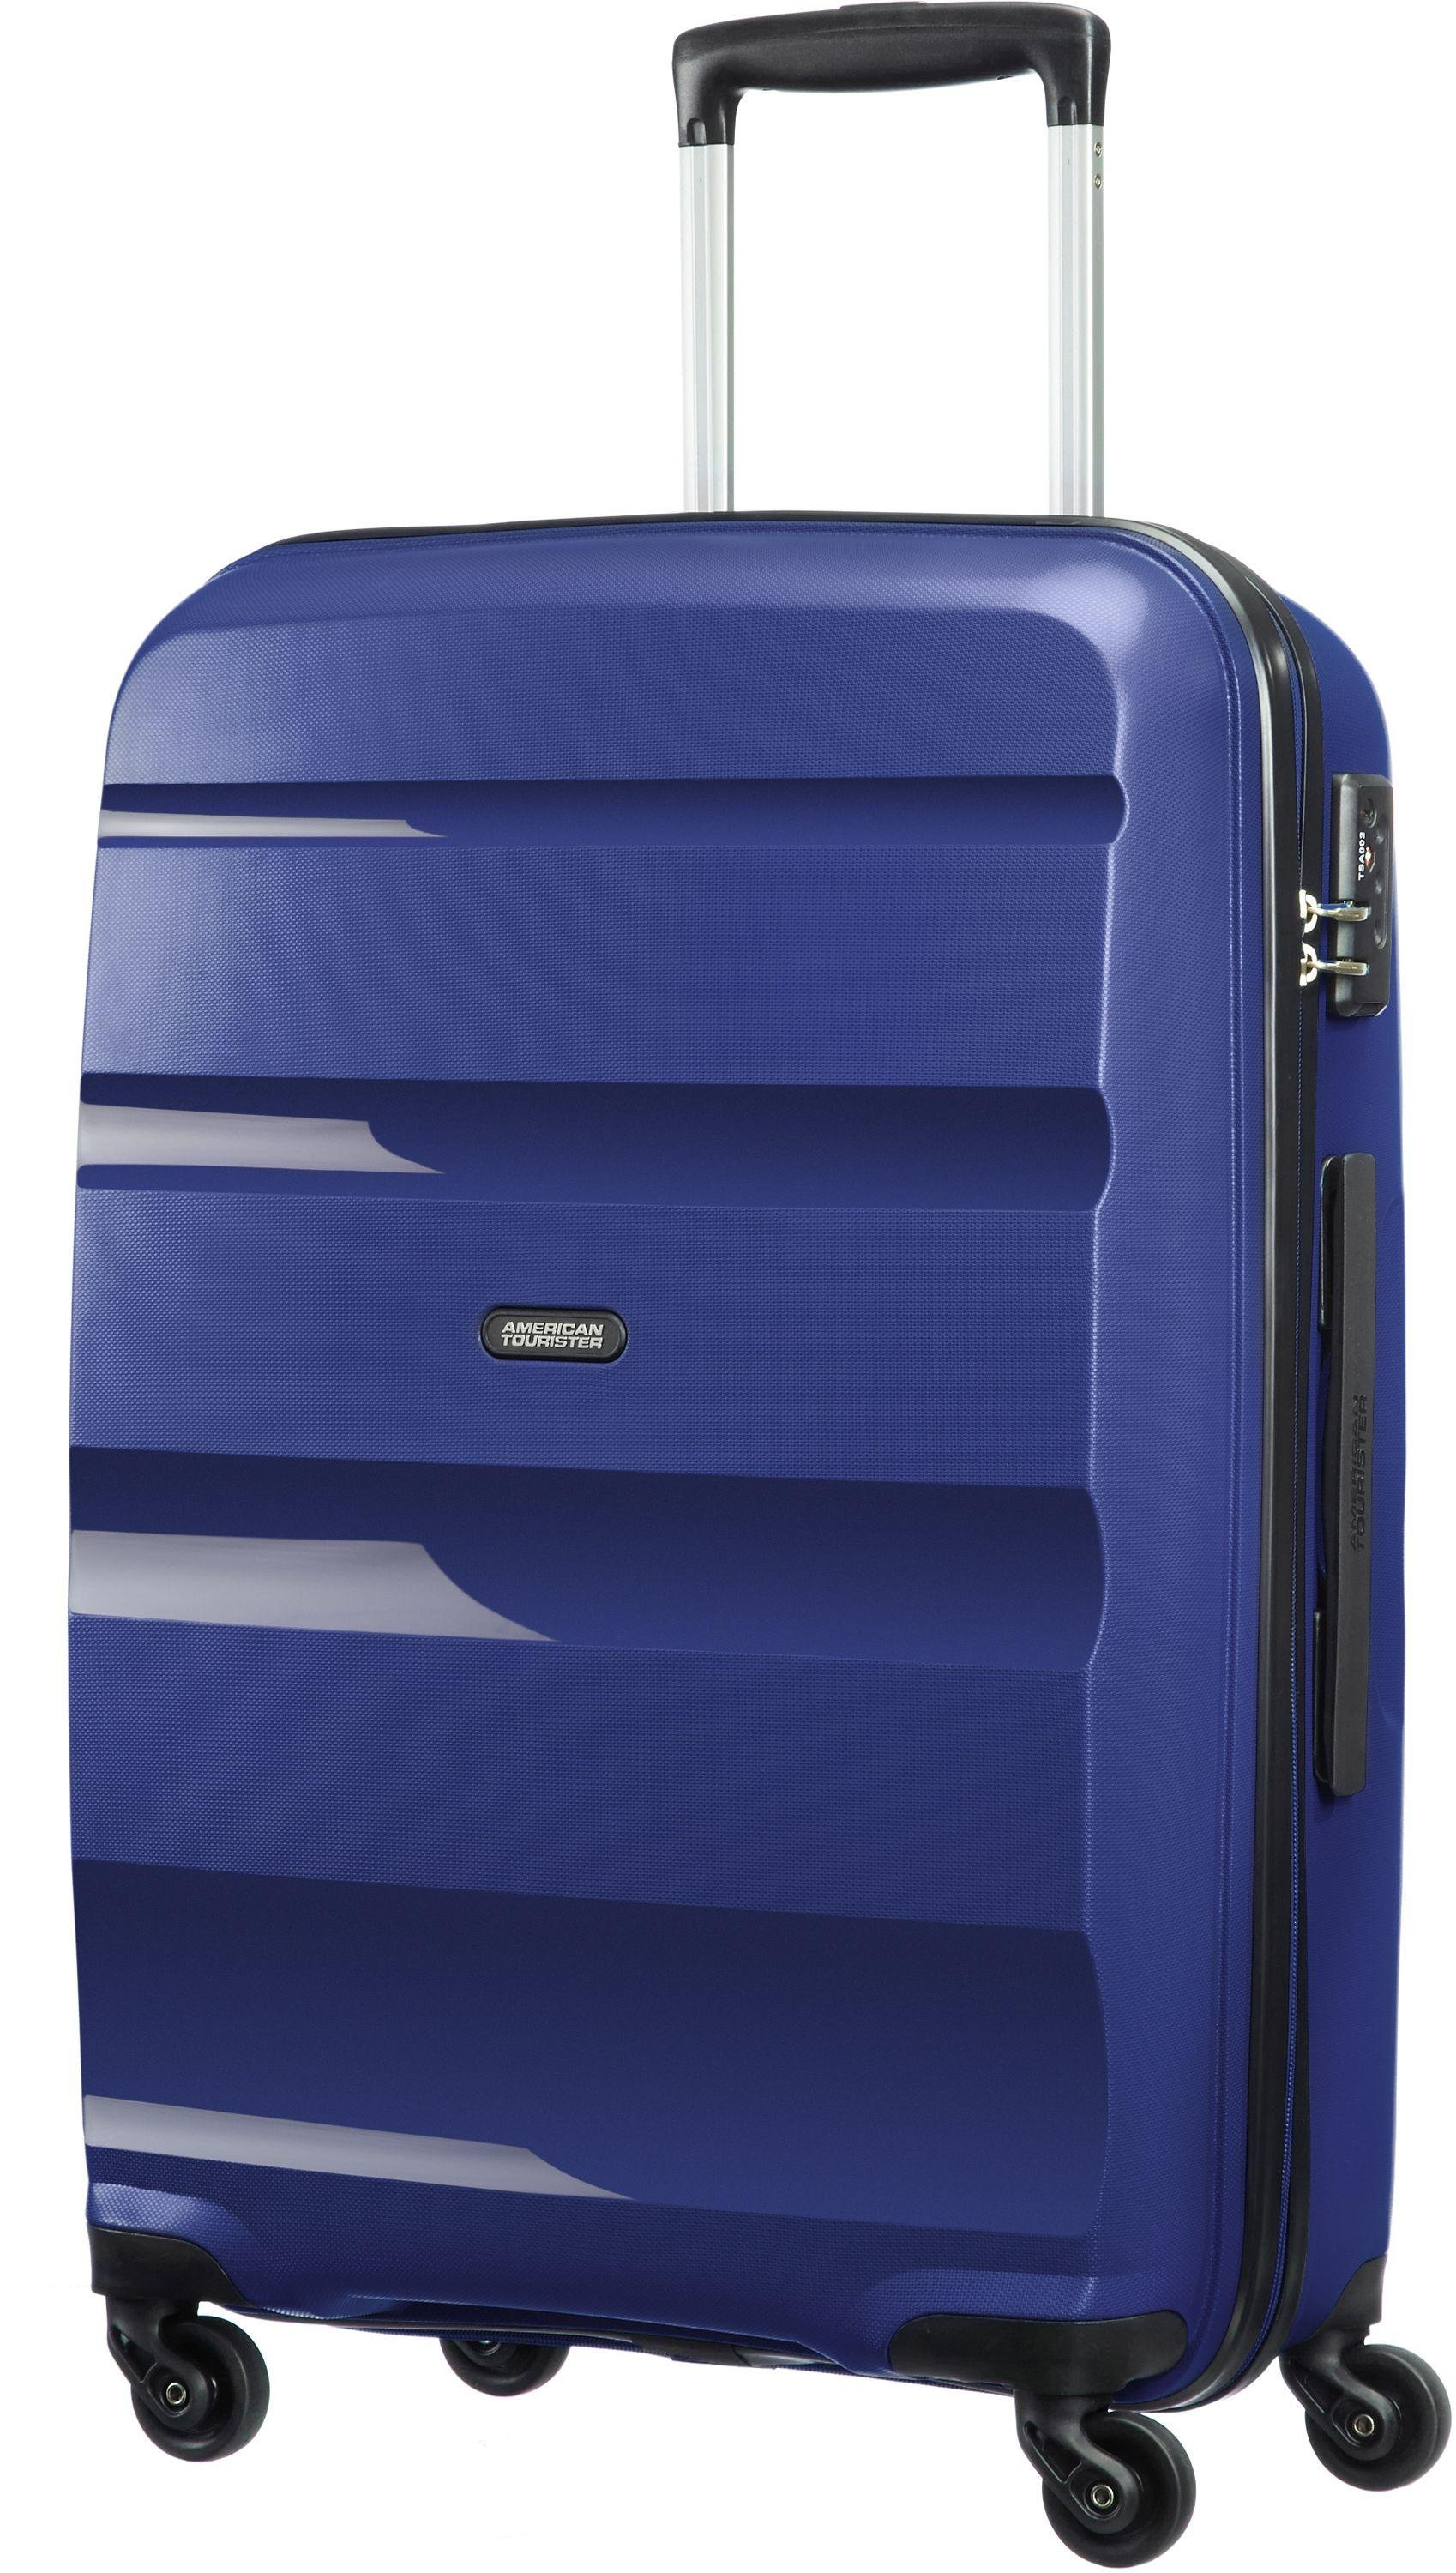 Image of American Tourister - Bon Air Spinner Medium Suitcase - Navy